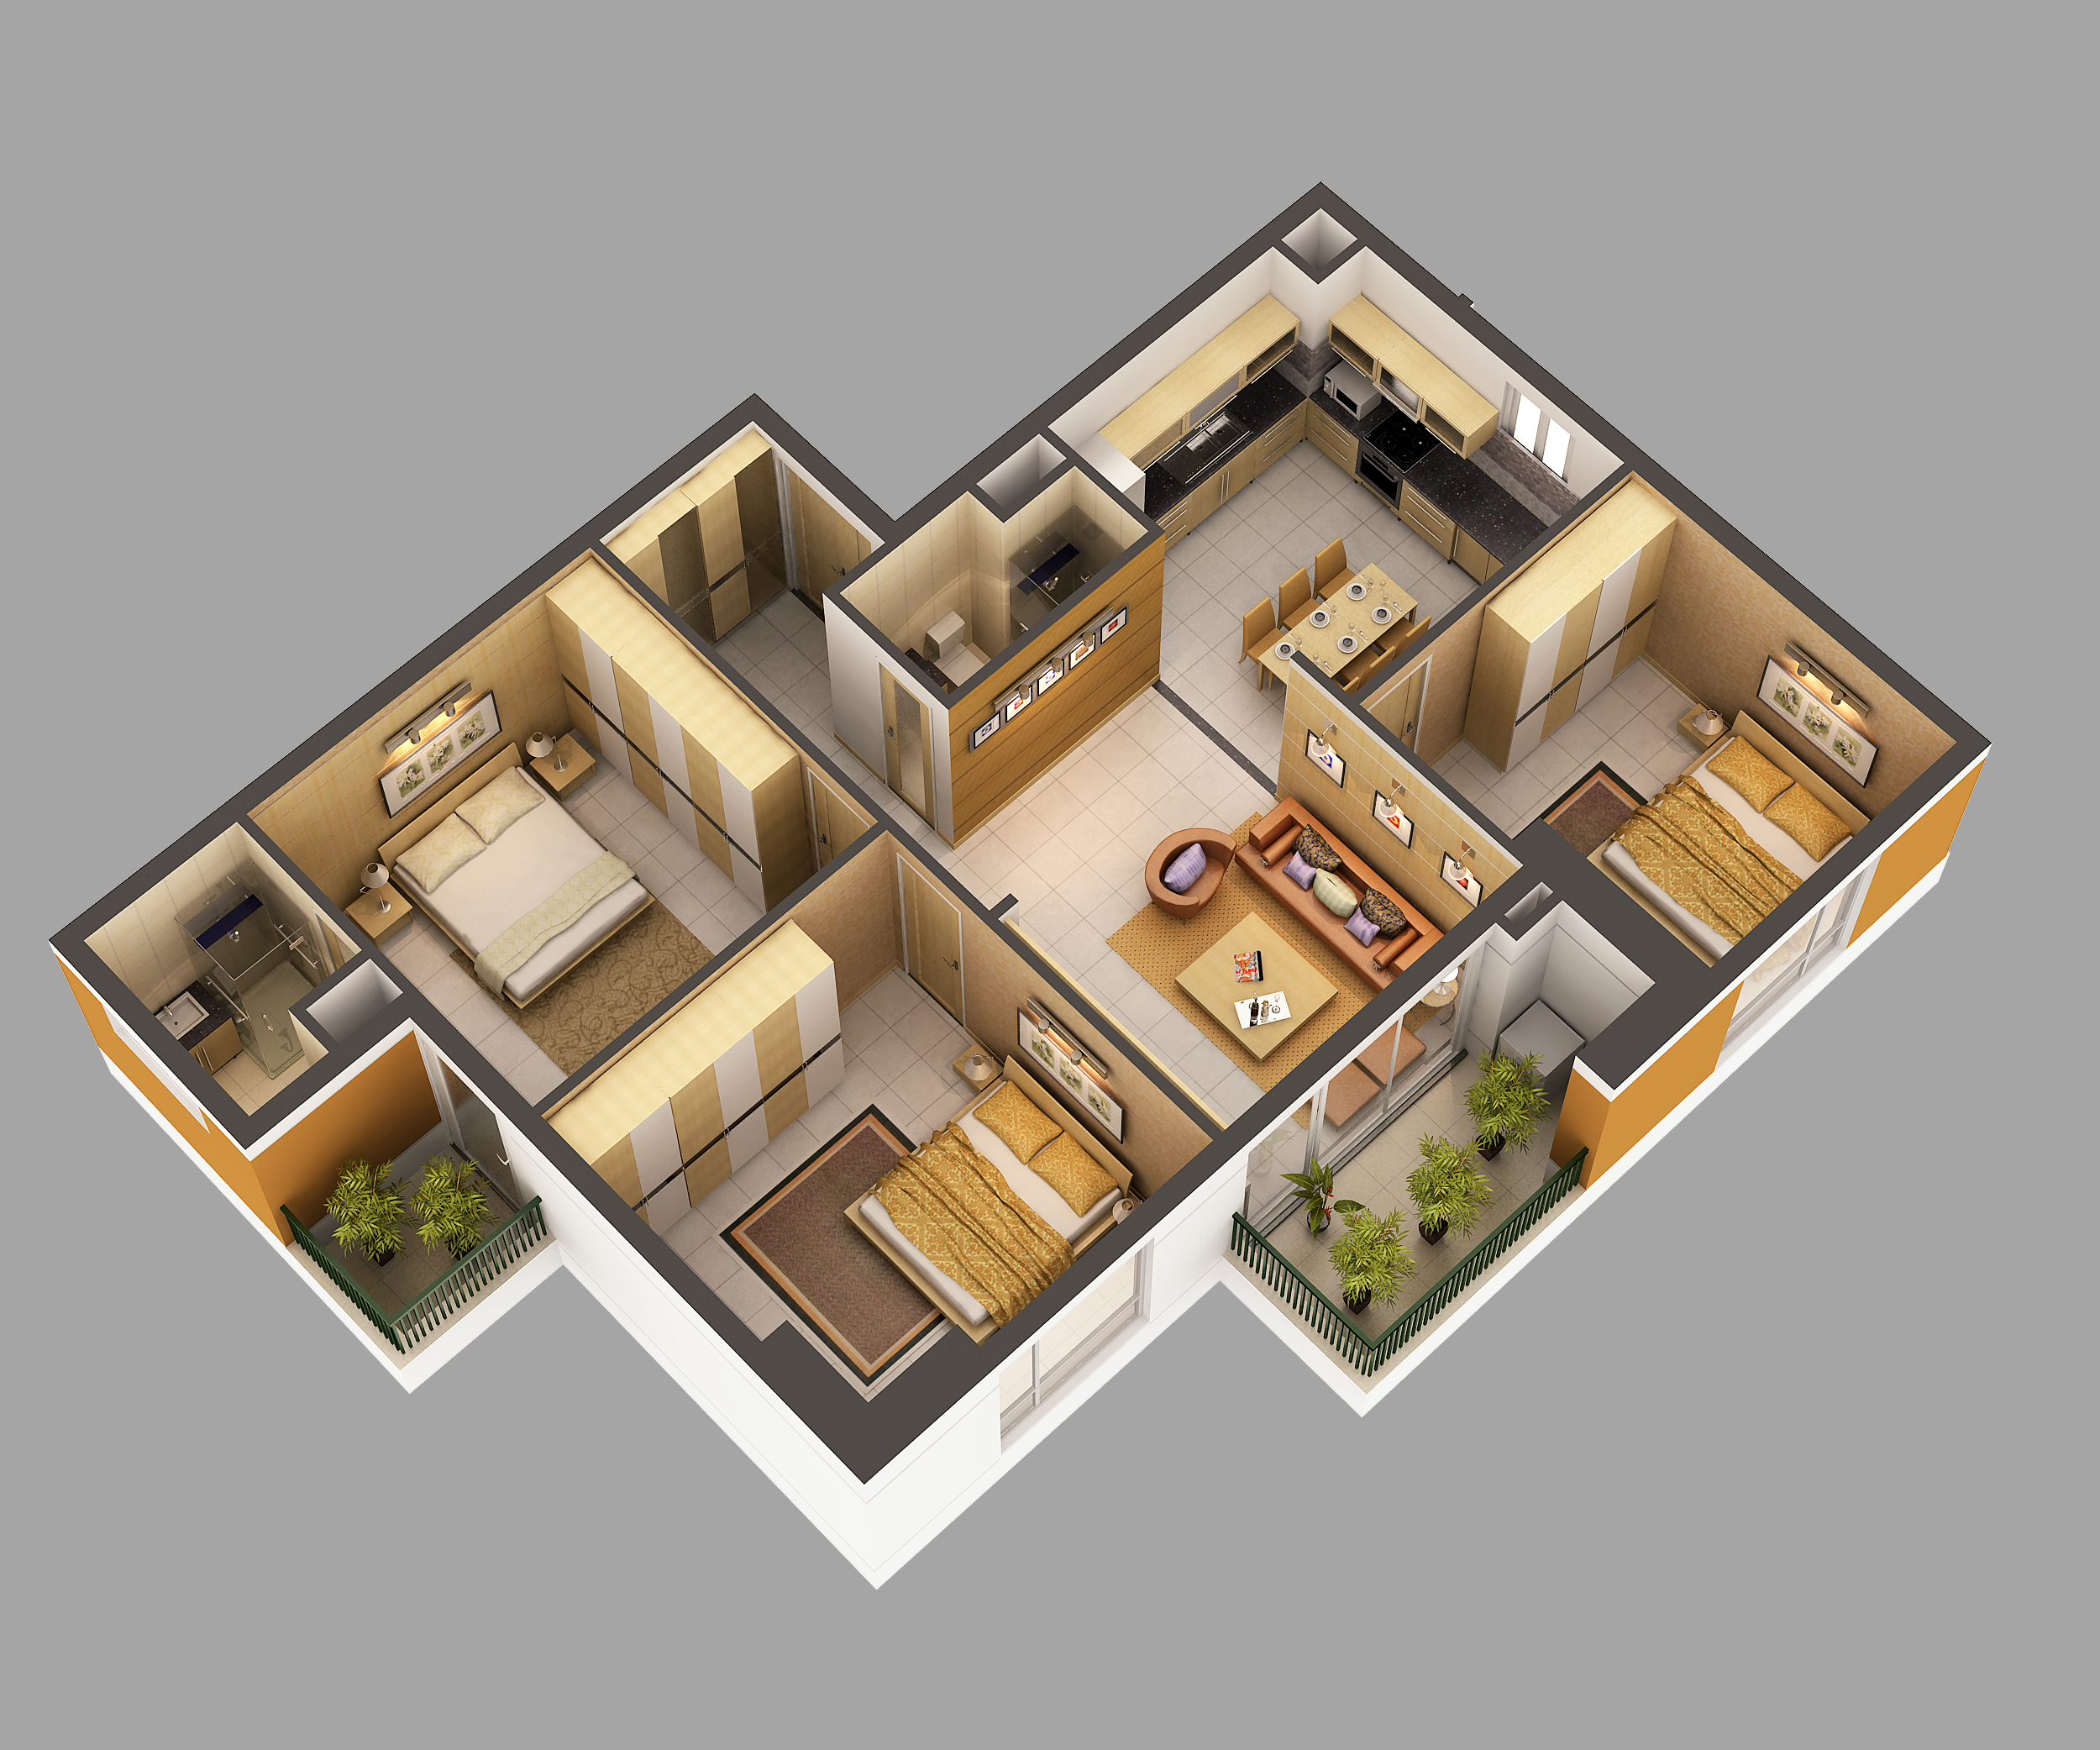 3d model home interior fully furnished 3d model max for 3d model room design